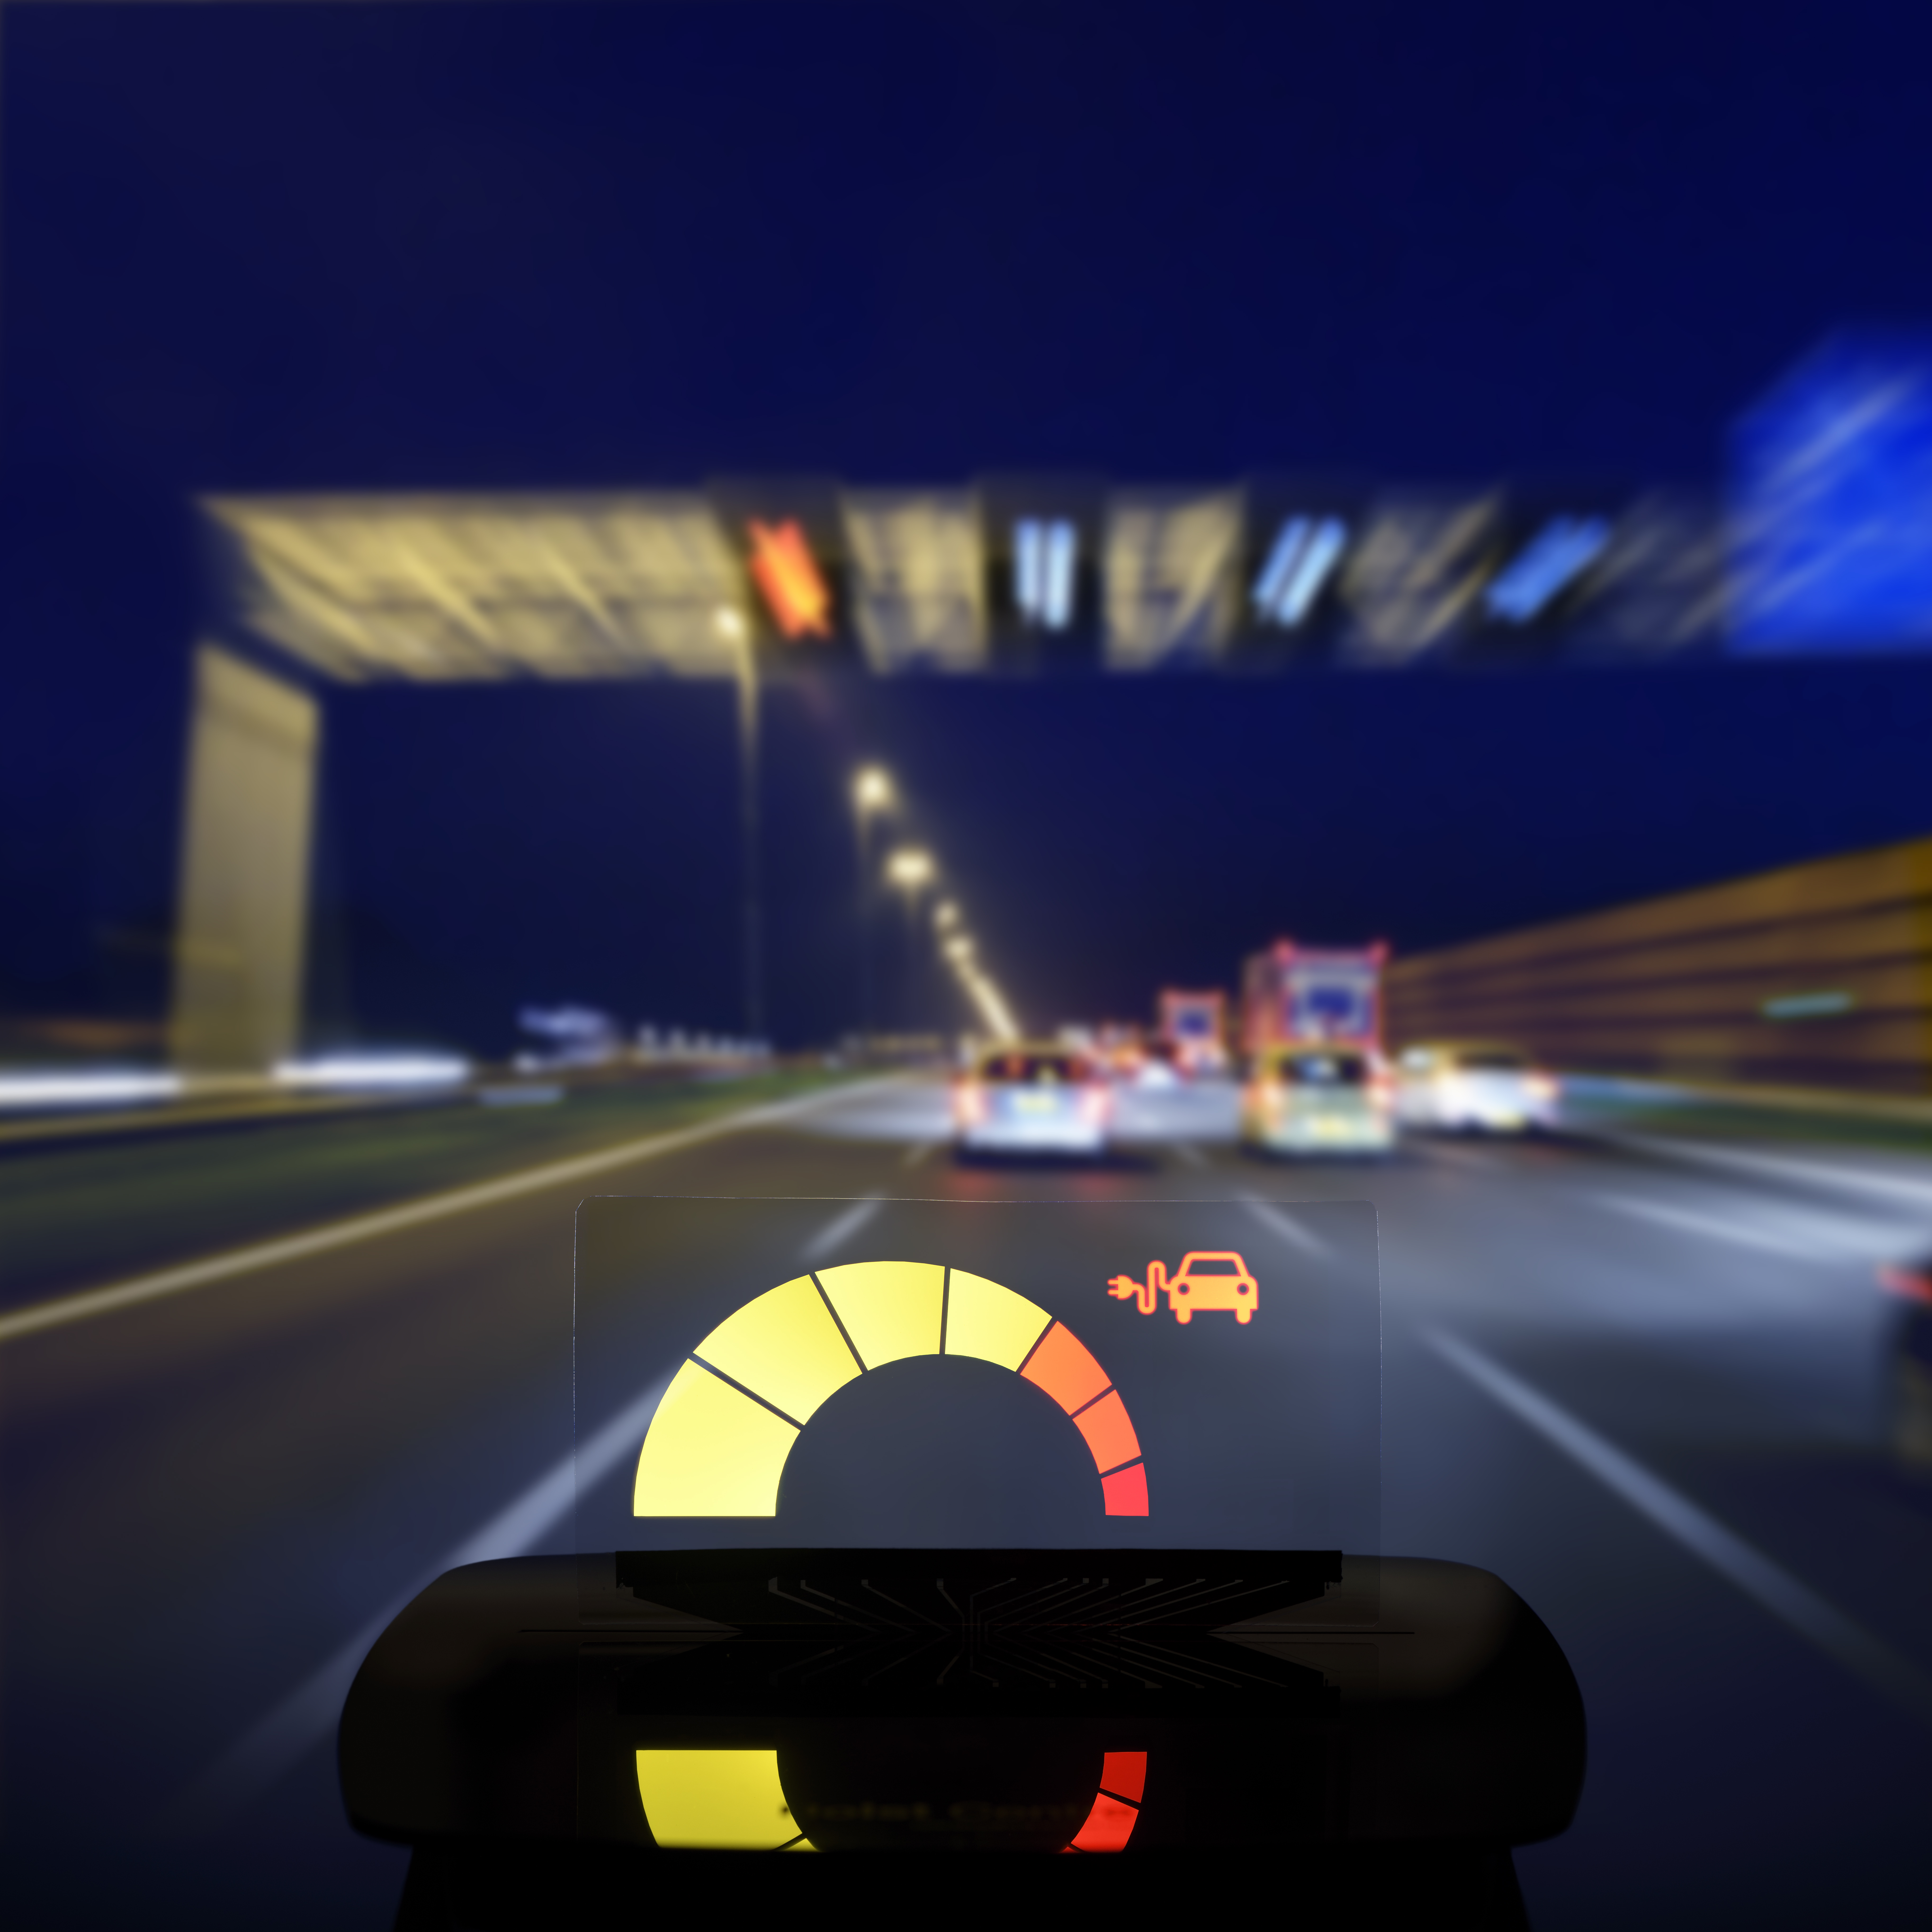 Revolutionary In Car Hud Shows Power Of Flexible